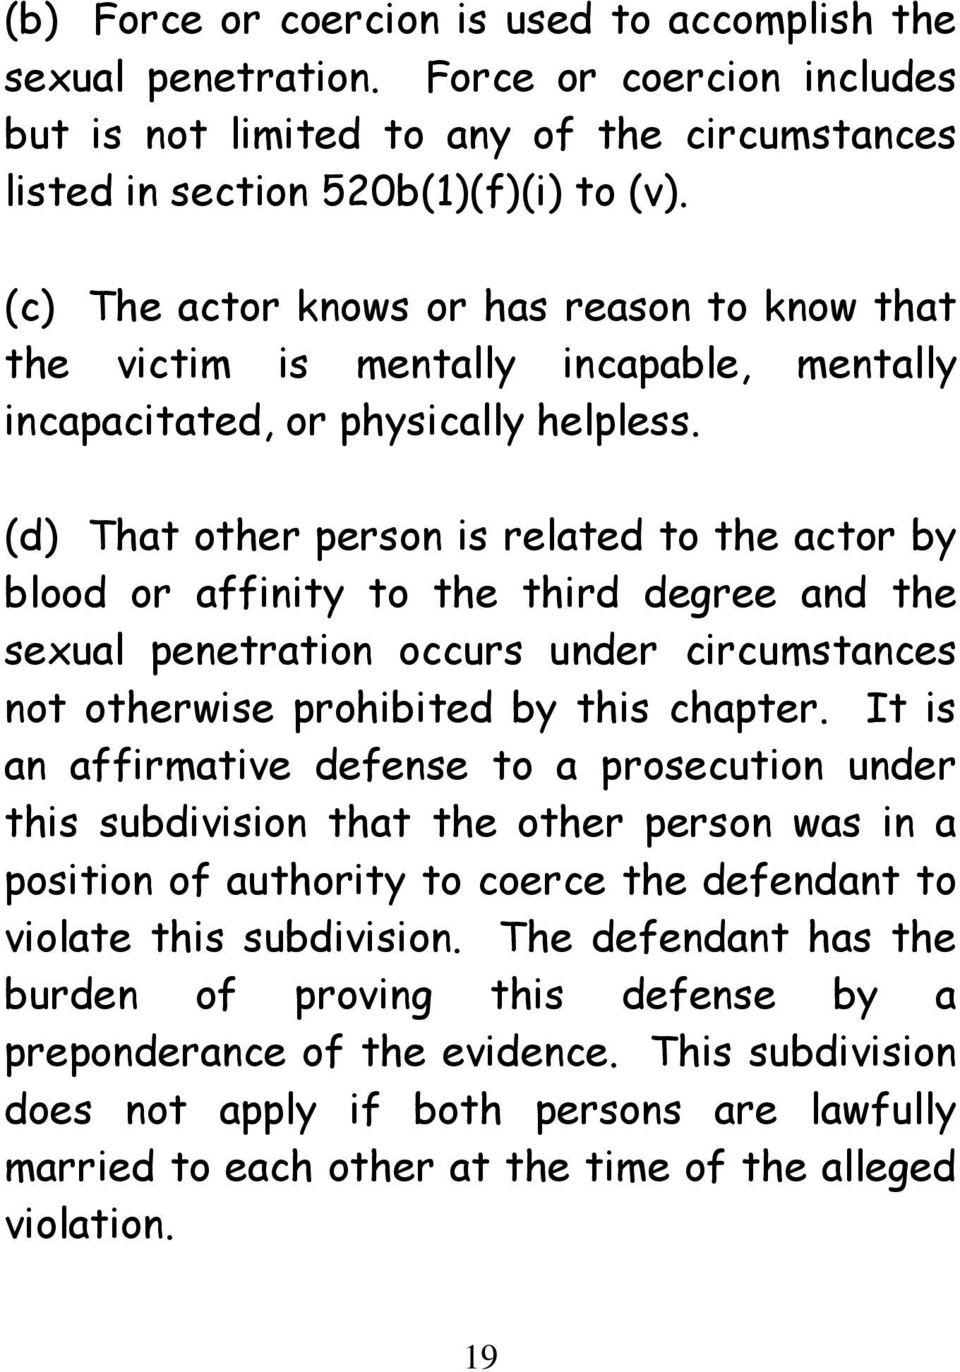 (d) That other person is related to the actor by blood or affinity to the third degree and the sexual penetration occurs under circumstances not otherwise prohibited by this chapter.